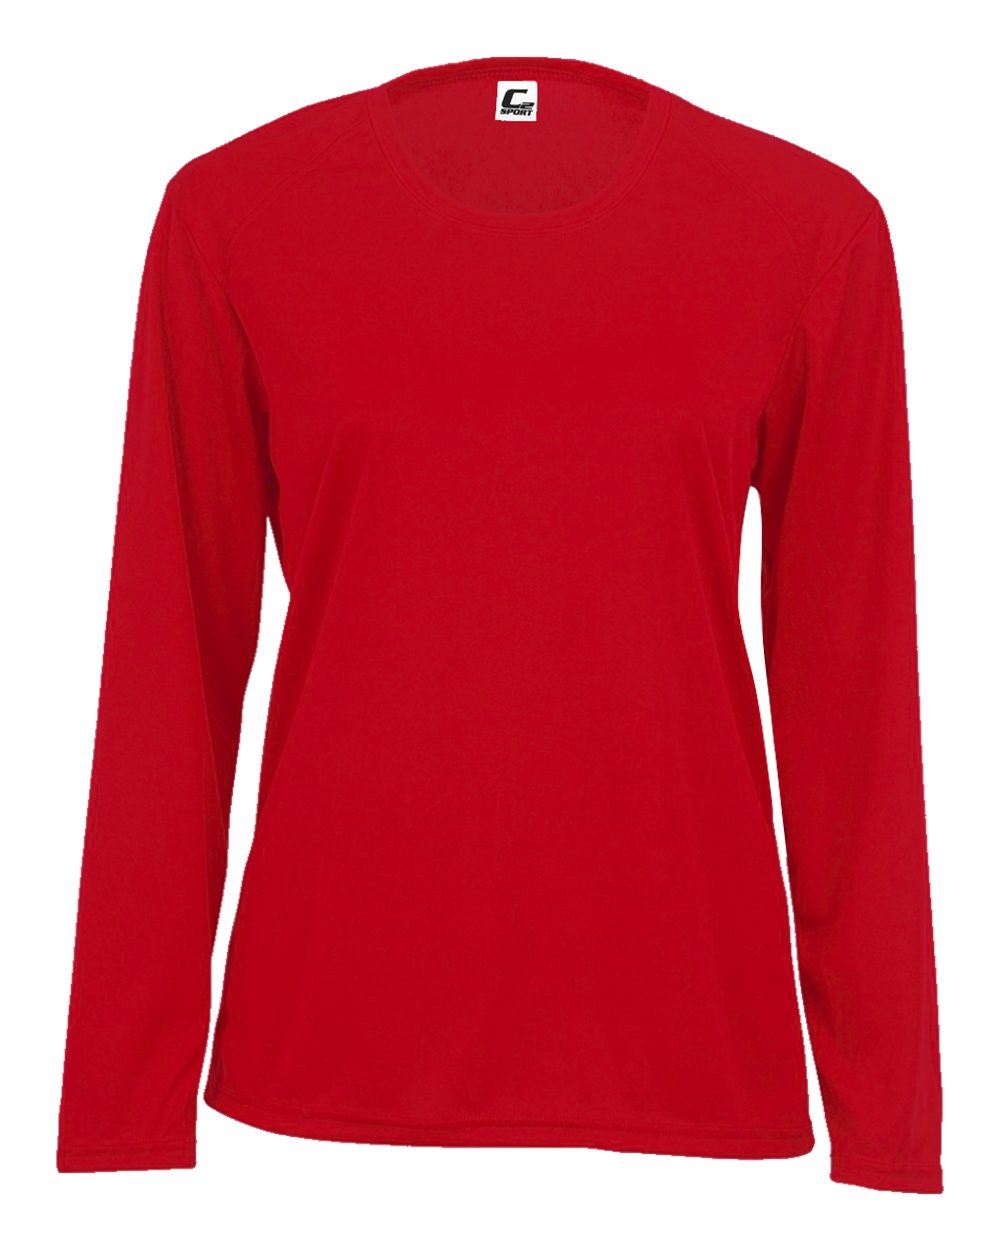 Badger C2 Ladies Long Sleeve Tee